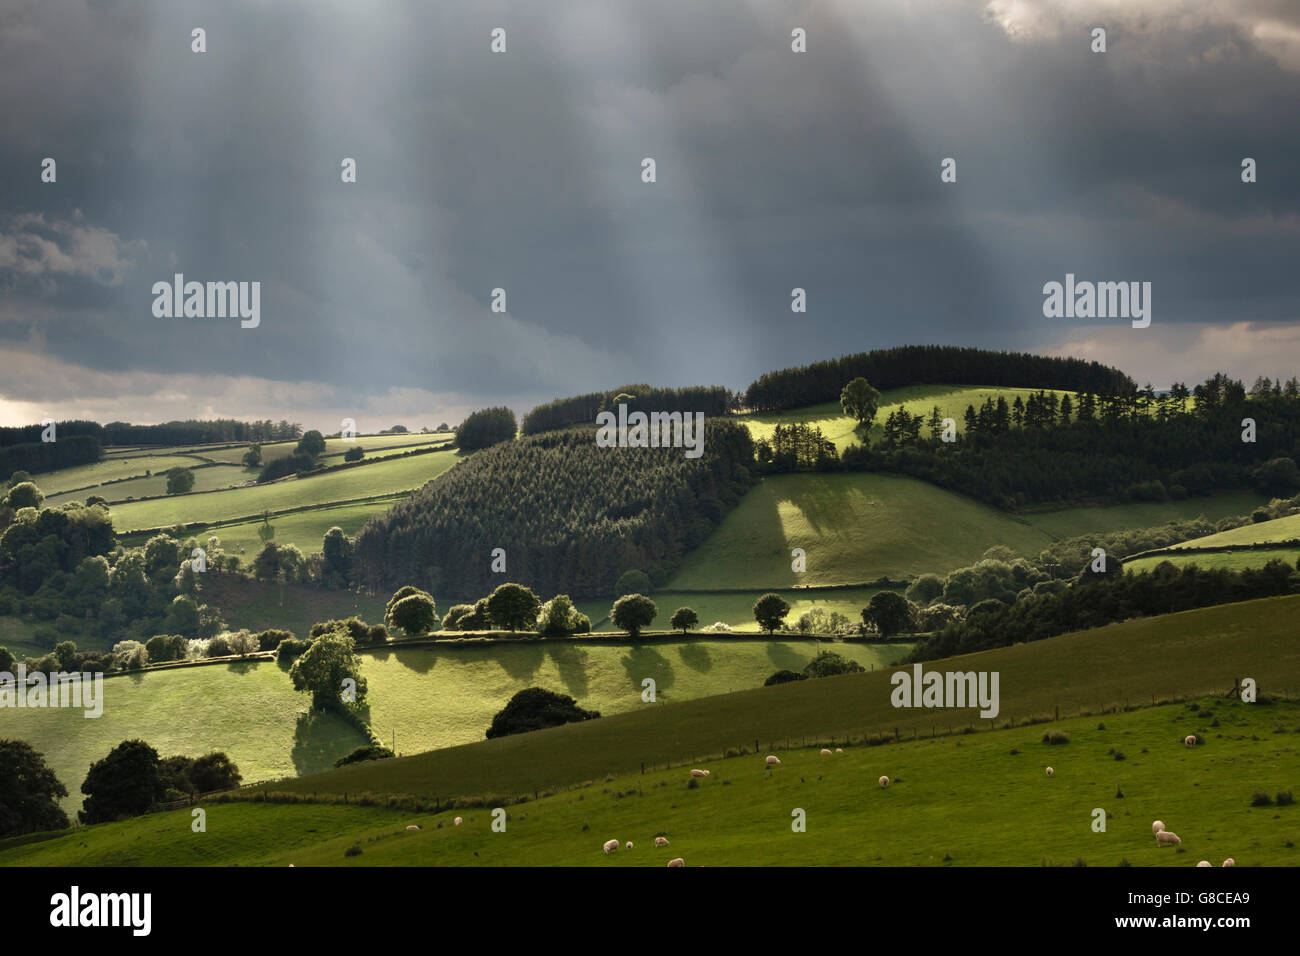 Near Knighton, Powys, UK, on the border between England and Wales. Beams of sunlight breaking through dark stormclouds - Stock Image